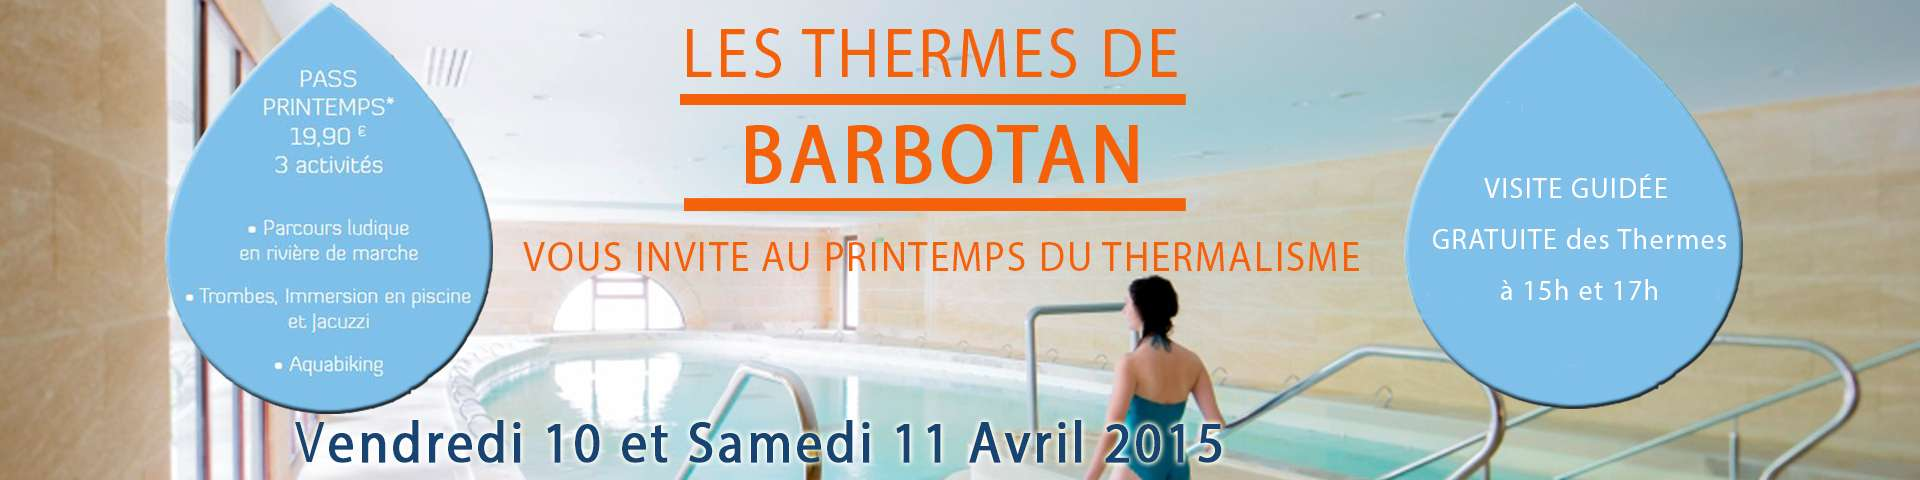 thermes2-335